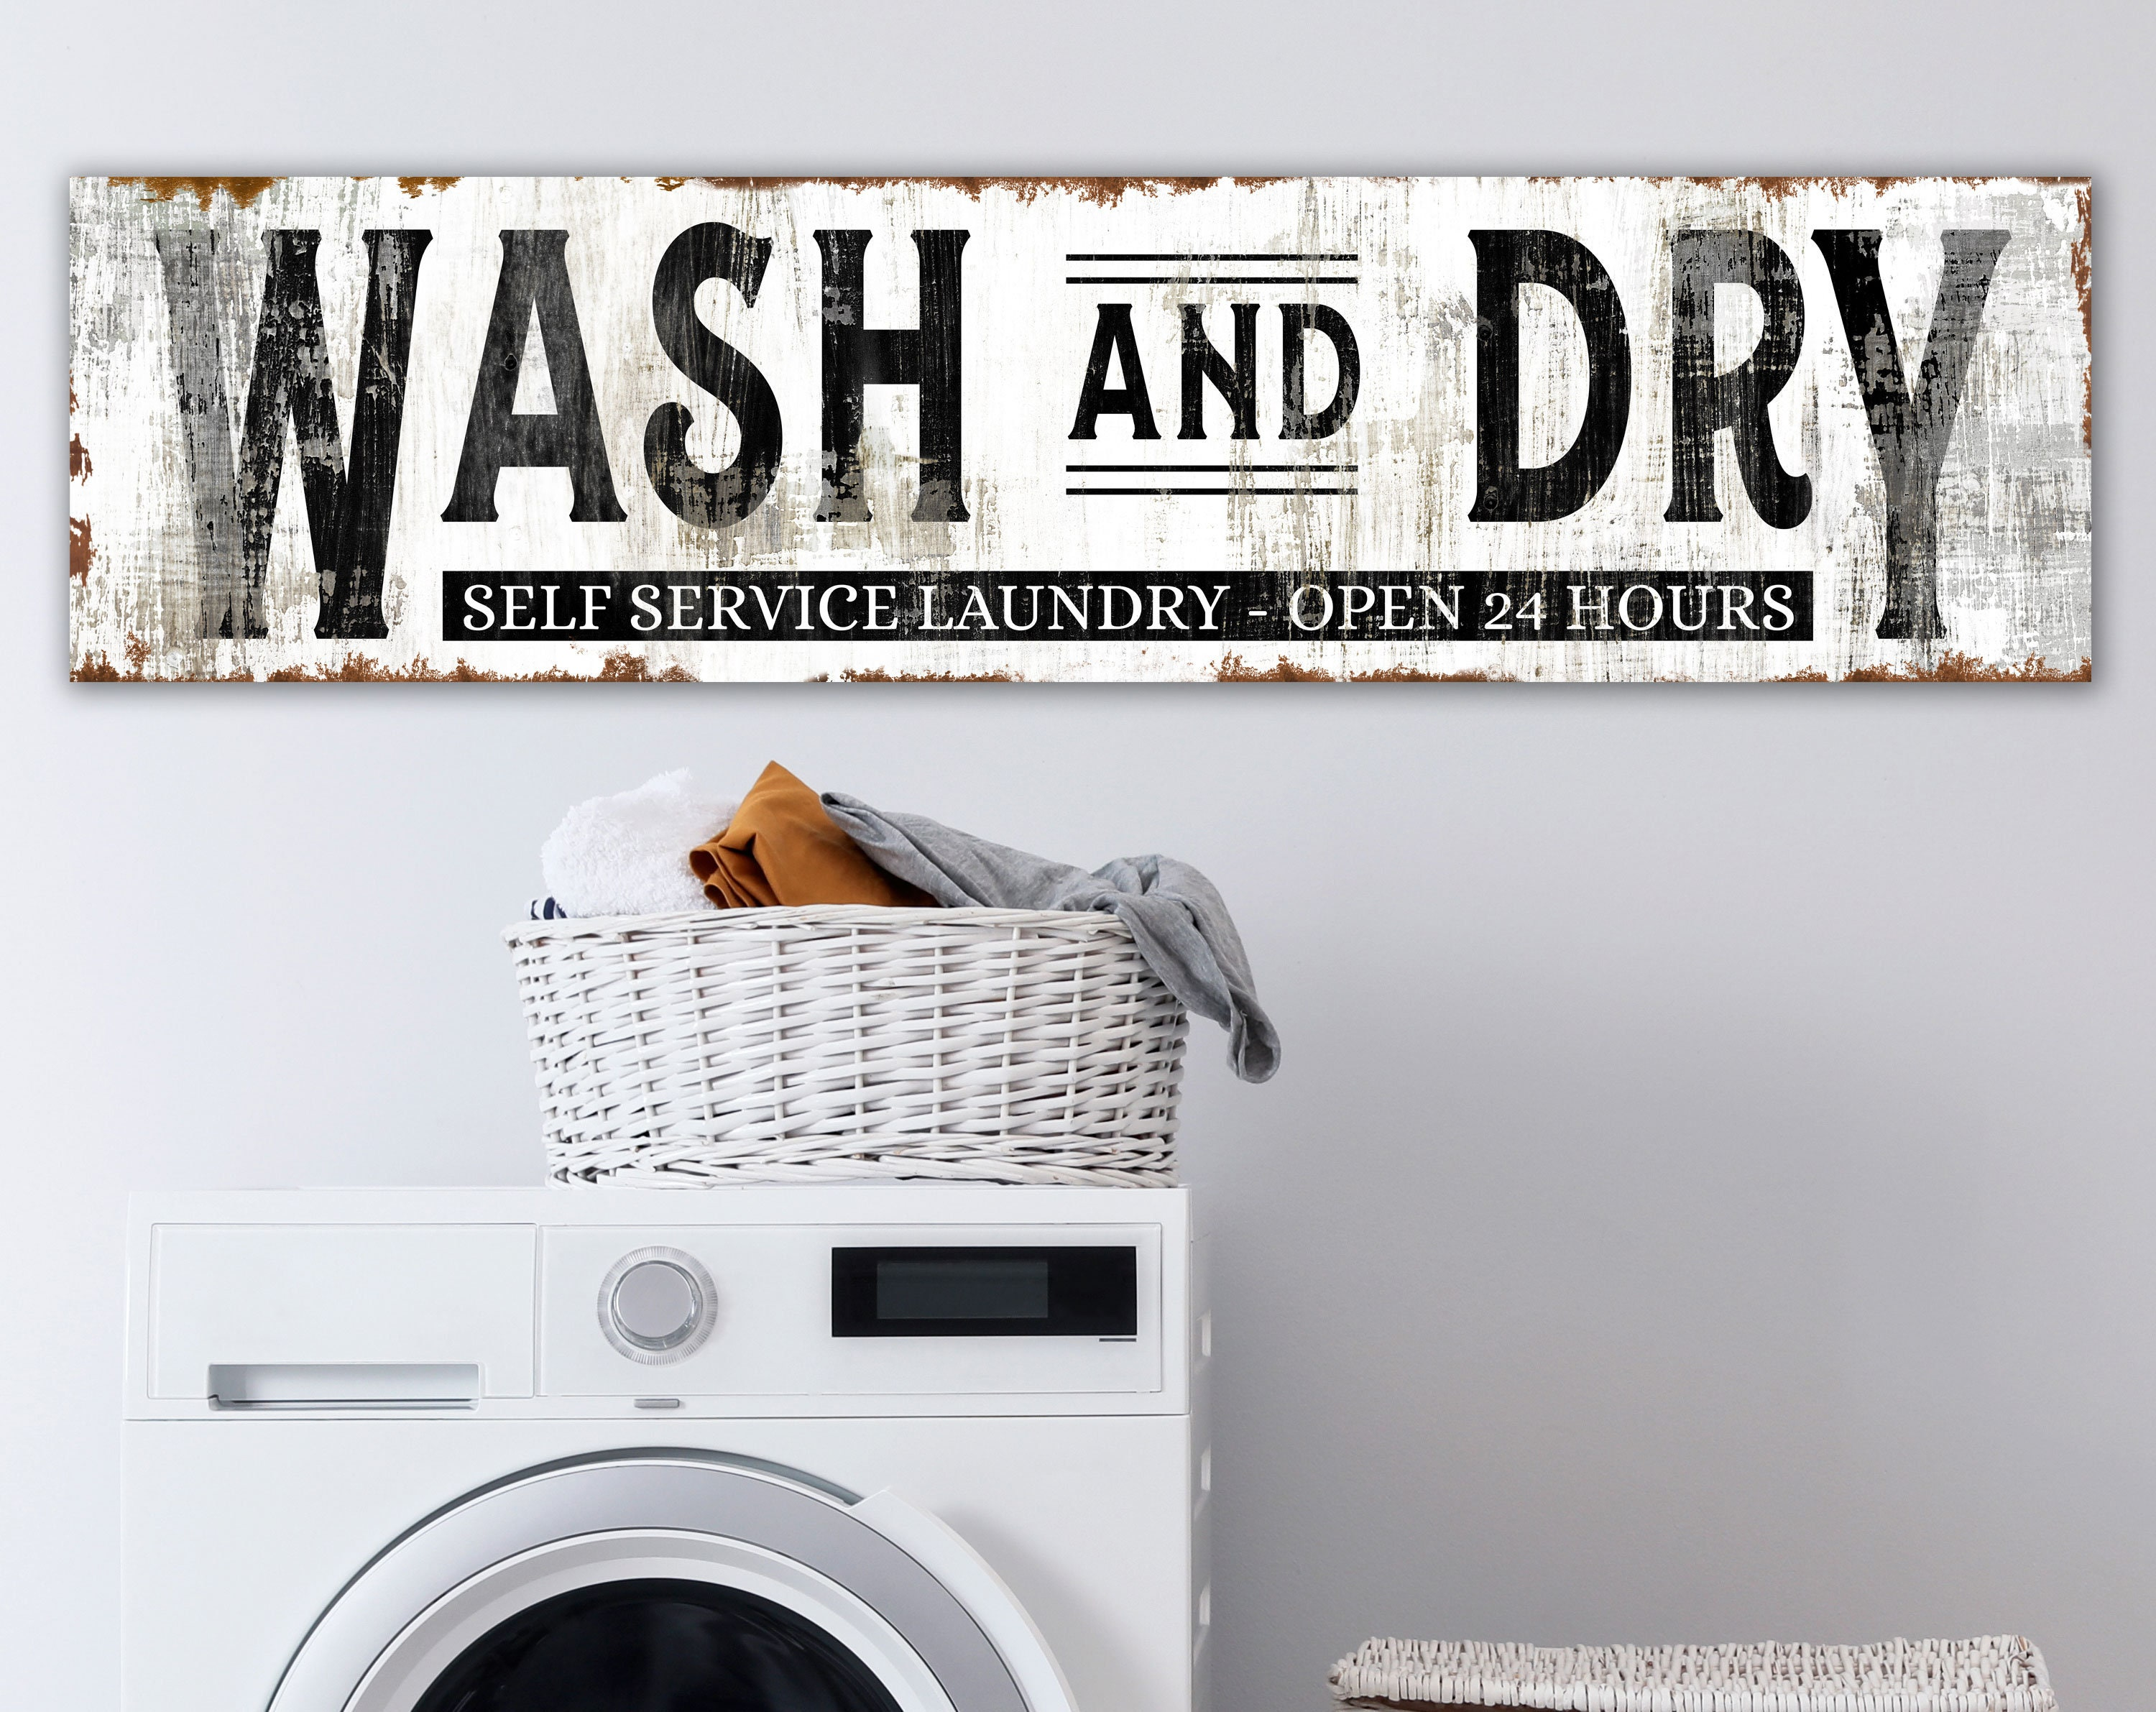 rustic home decor Modern Farmhouse wall Decor Vintage Style Laundry Sign Sign for laundry room 25x13 framed wood sign